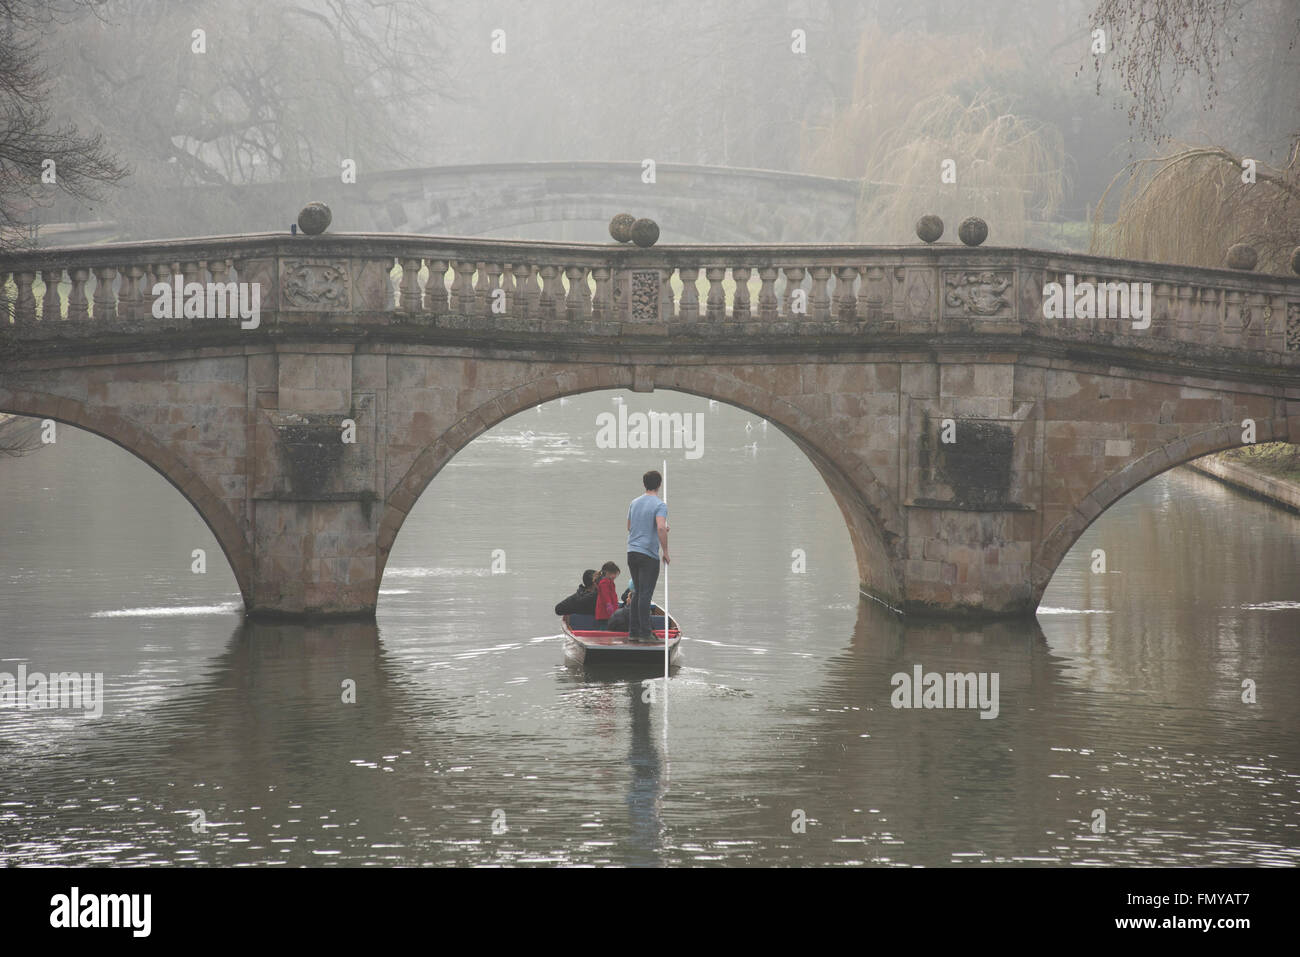 Cambridge, UK. 13th March, 2016. UK Weather: Cambridge misty River Cam and visitors punting. 13 March 2016 Punting - Stock Image